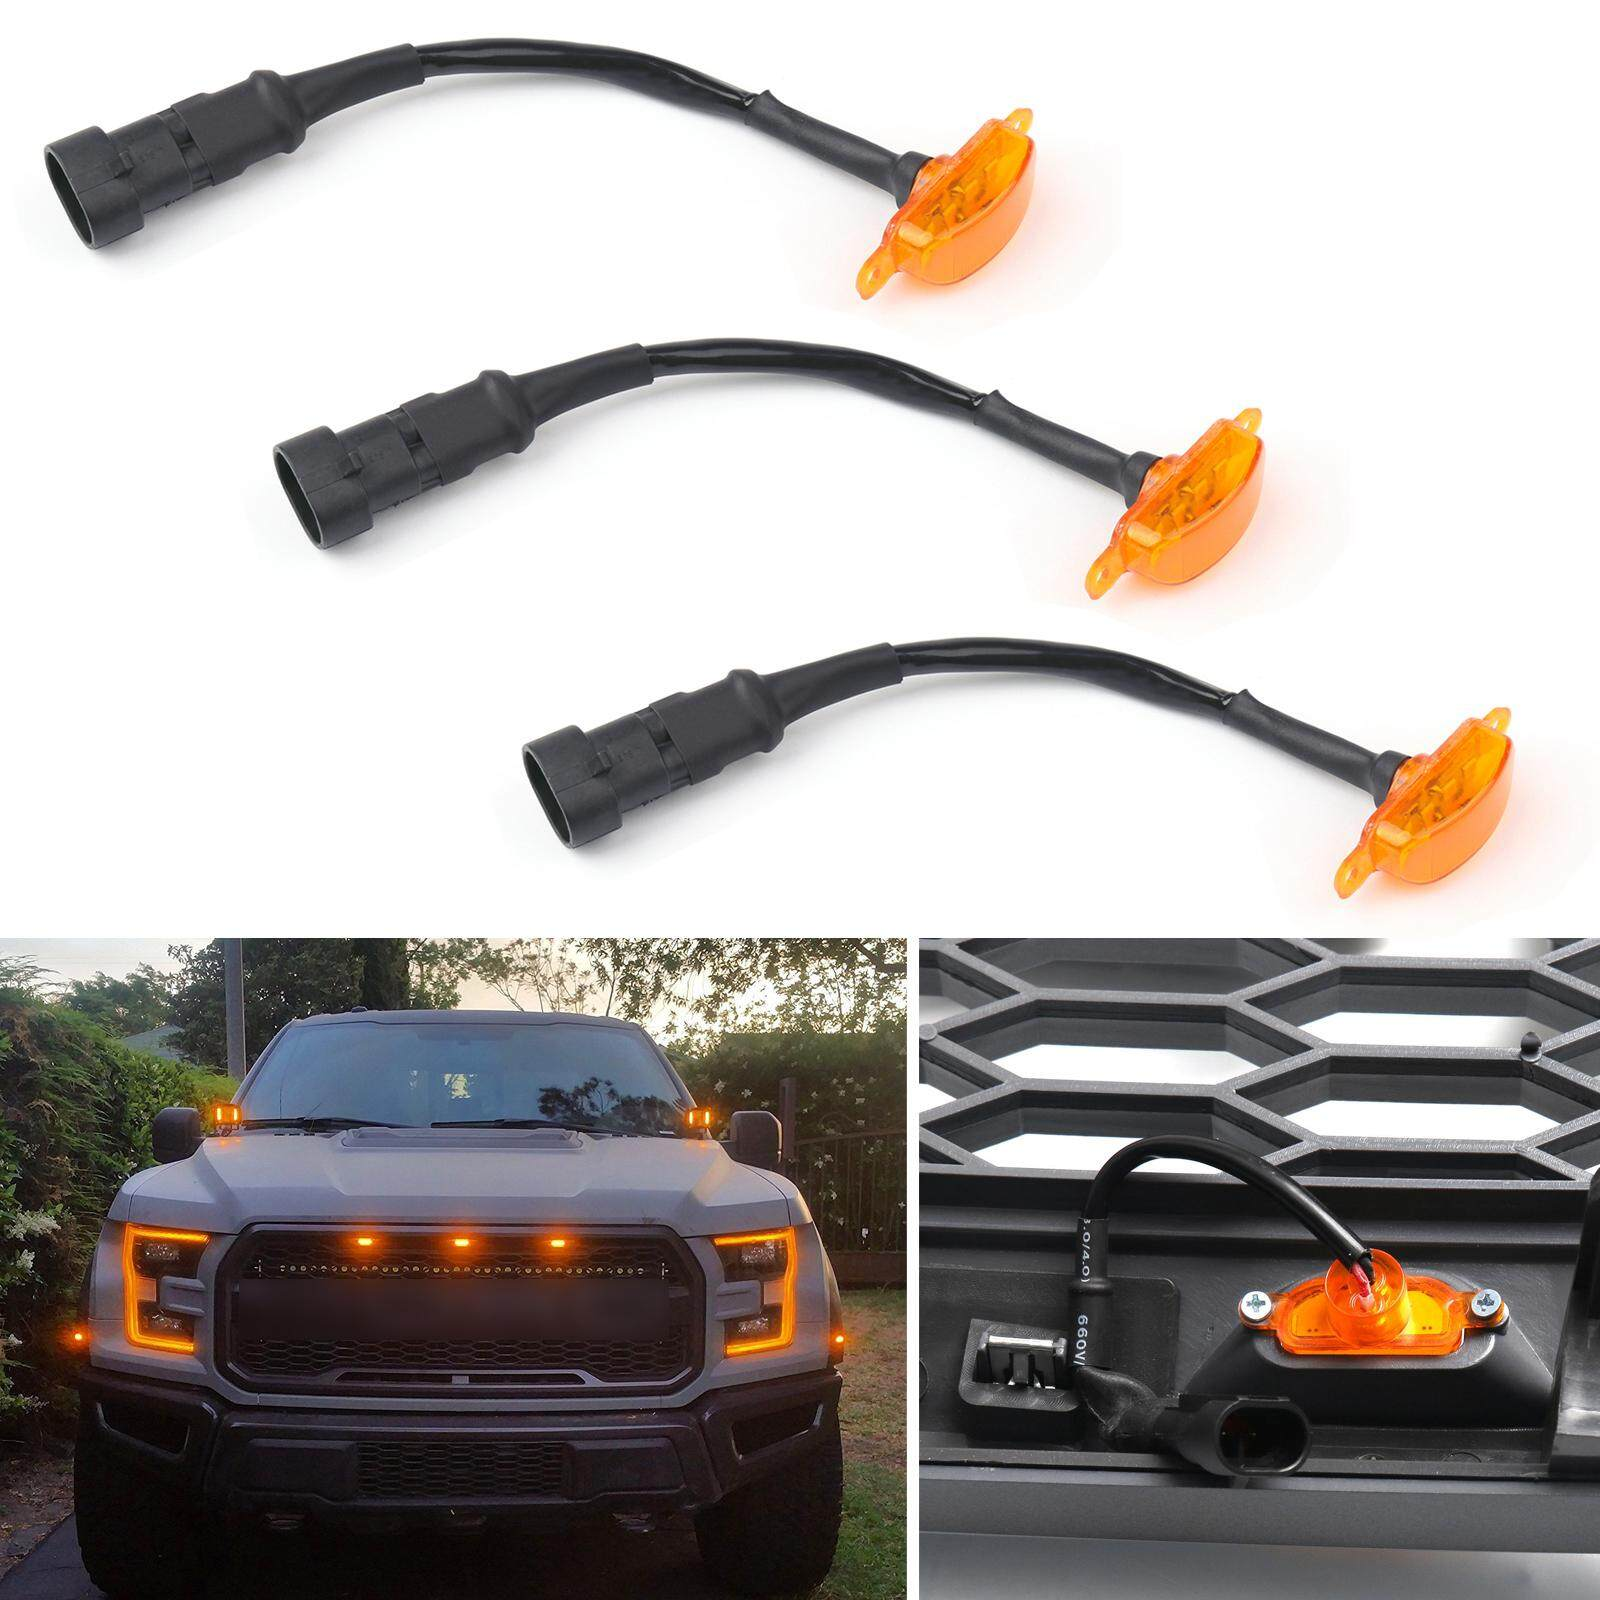 Areyourshop 3x Bumper Grille Led Light Grill For Ford F-150 F150 2015-2019 Raptor Style By Areyourshop.